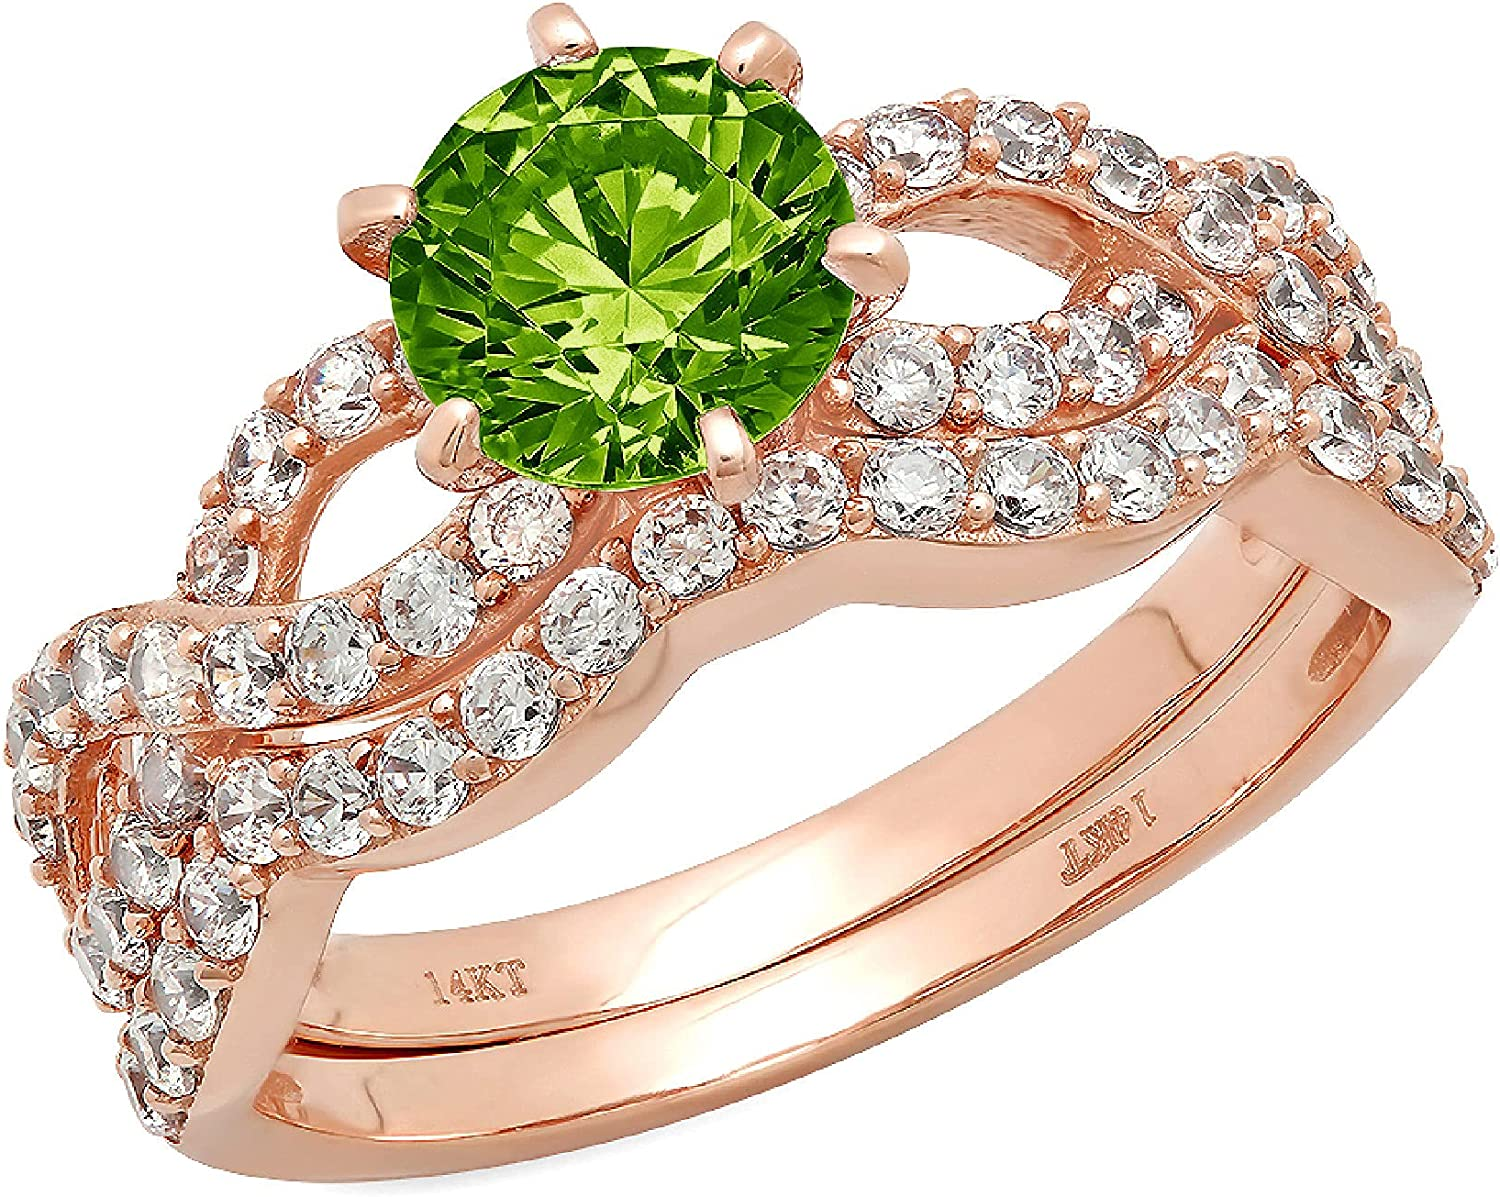 Clara Pucci 1.55ct Round Cut Halo Pave Solitaire Unique Accent Genuine Flawless Natural Green Peridot Engagement Promise Statement Anniversary Bridal Wedding Ring Band set Curved 18K Rose Gold